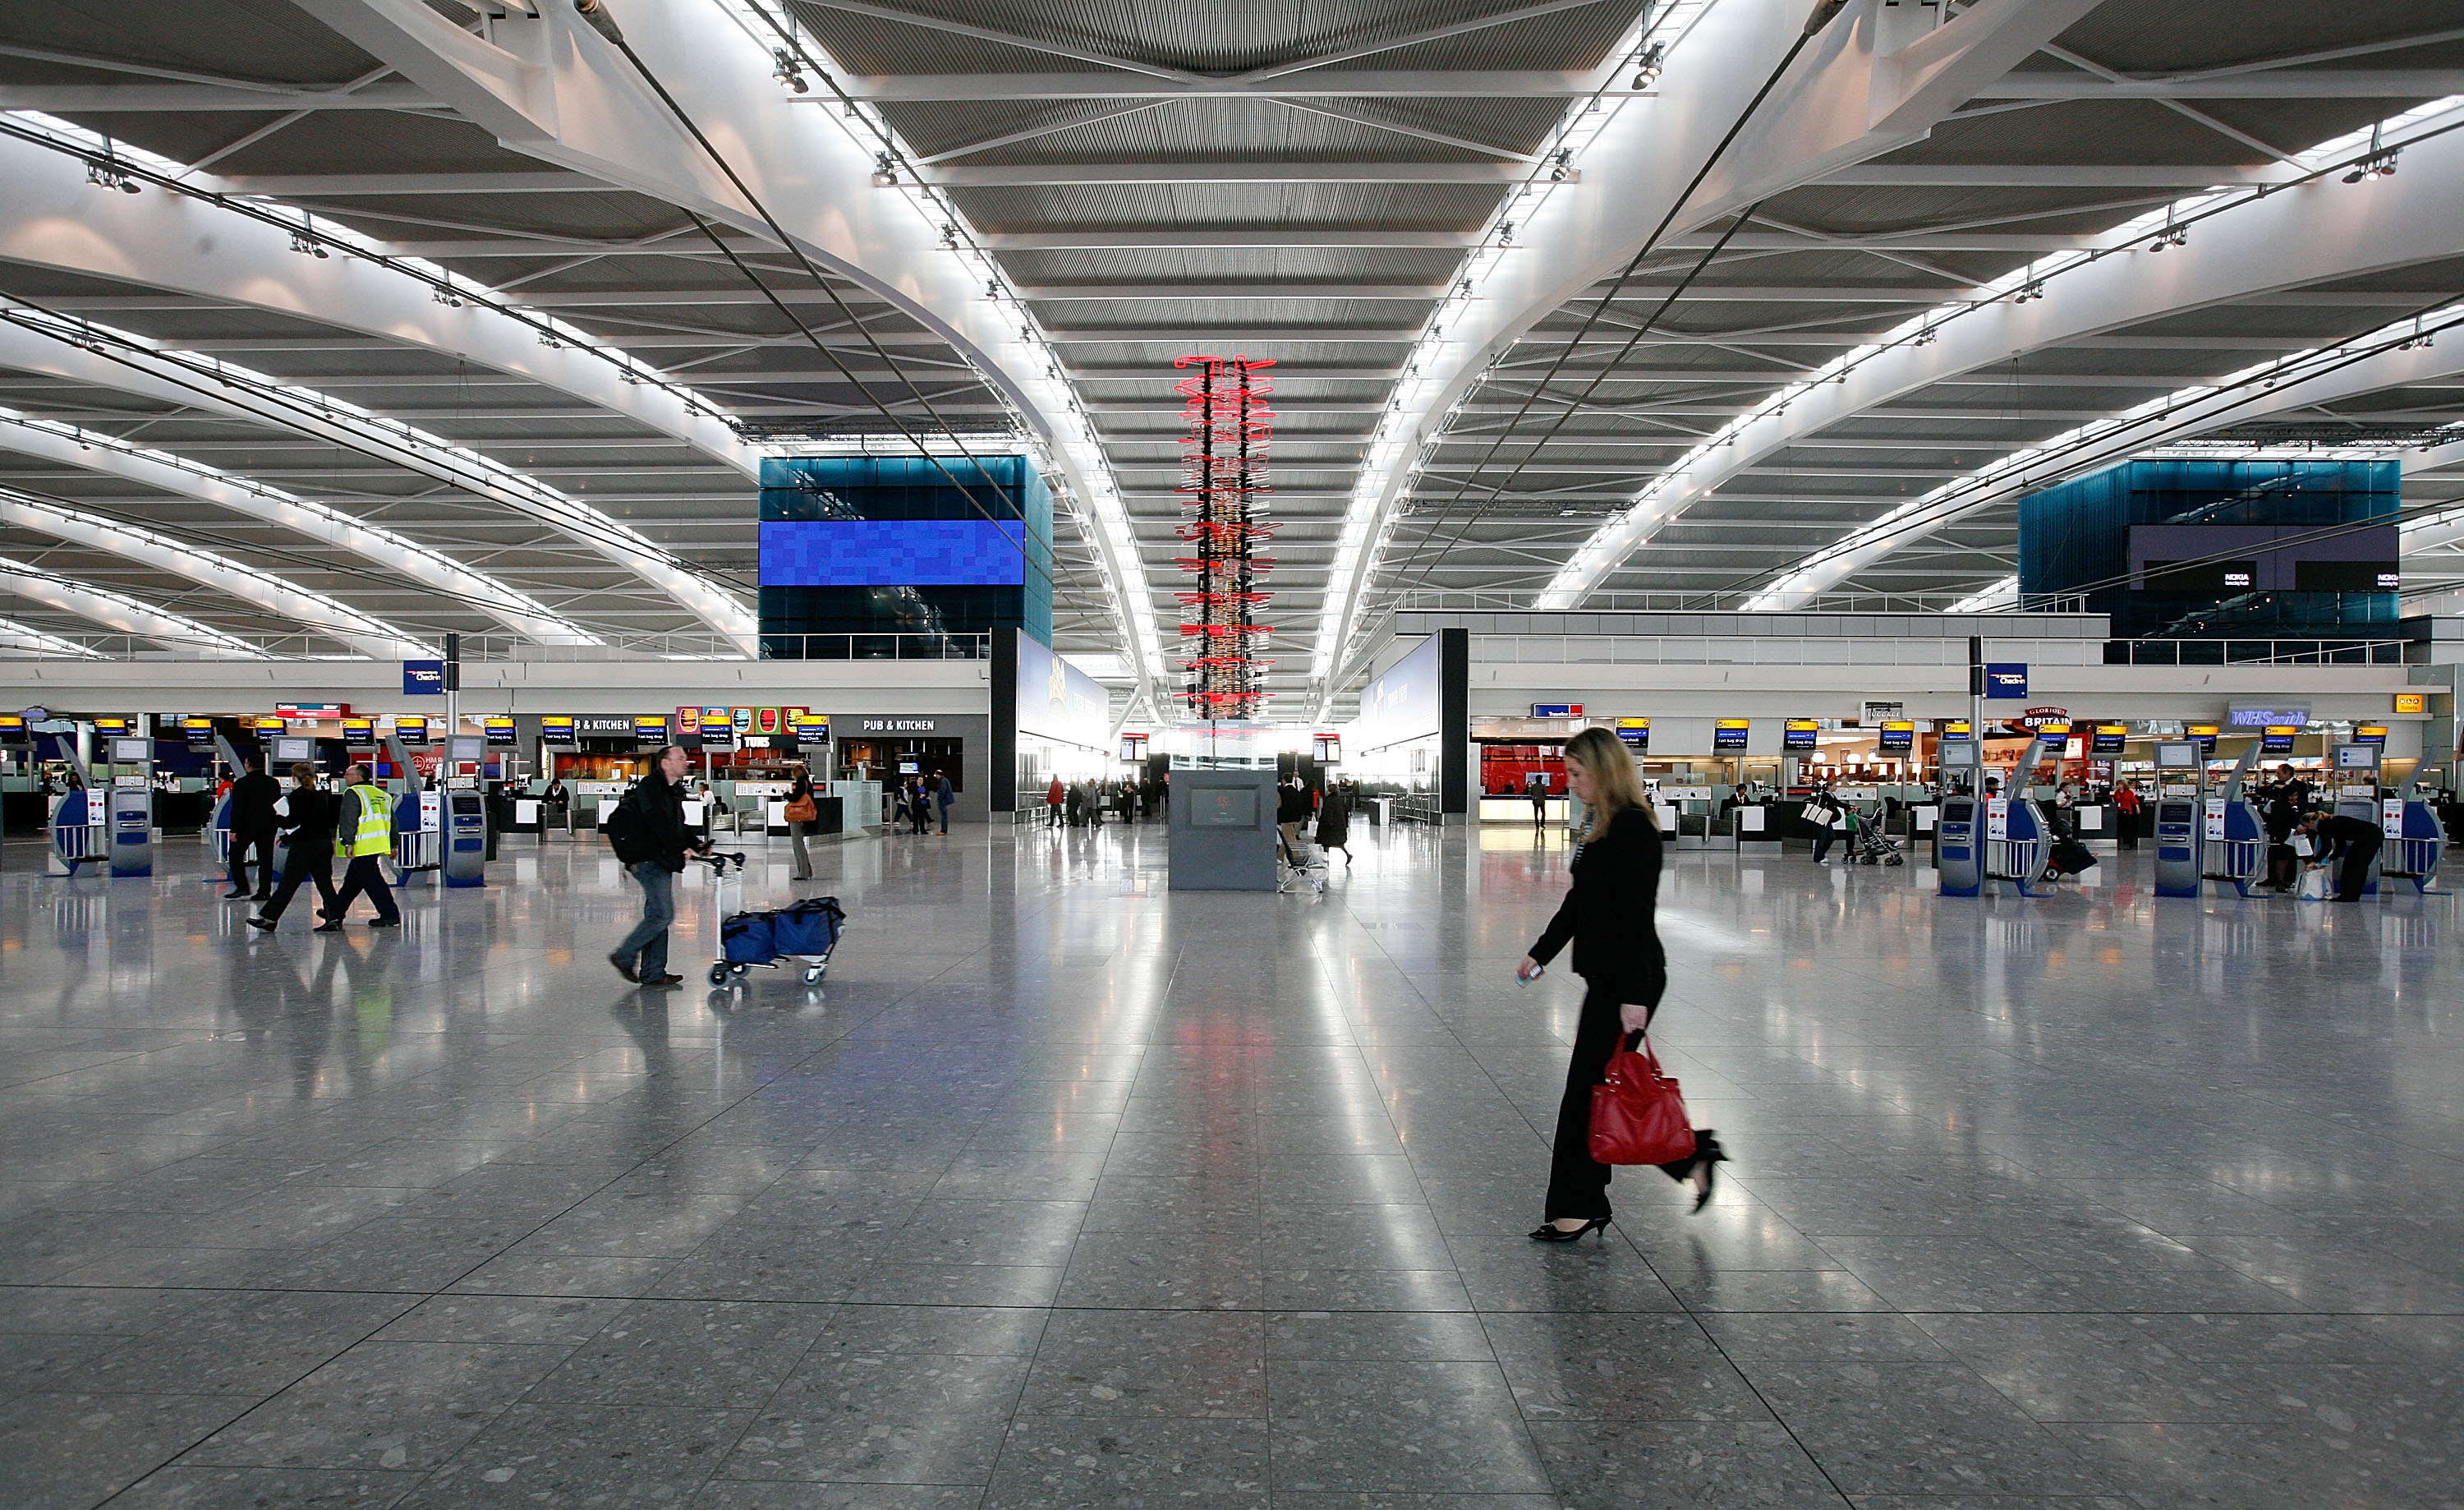 Rugby World Cup fans help Heathrow airport post record October traffic